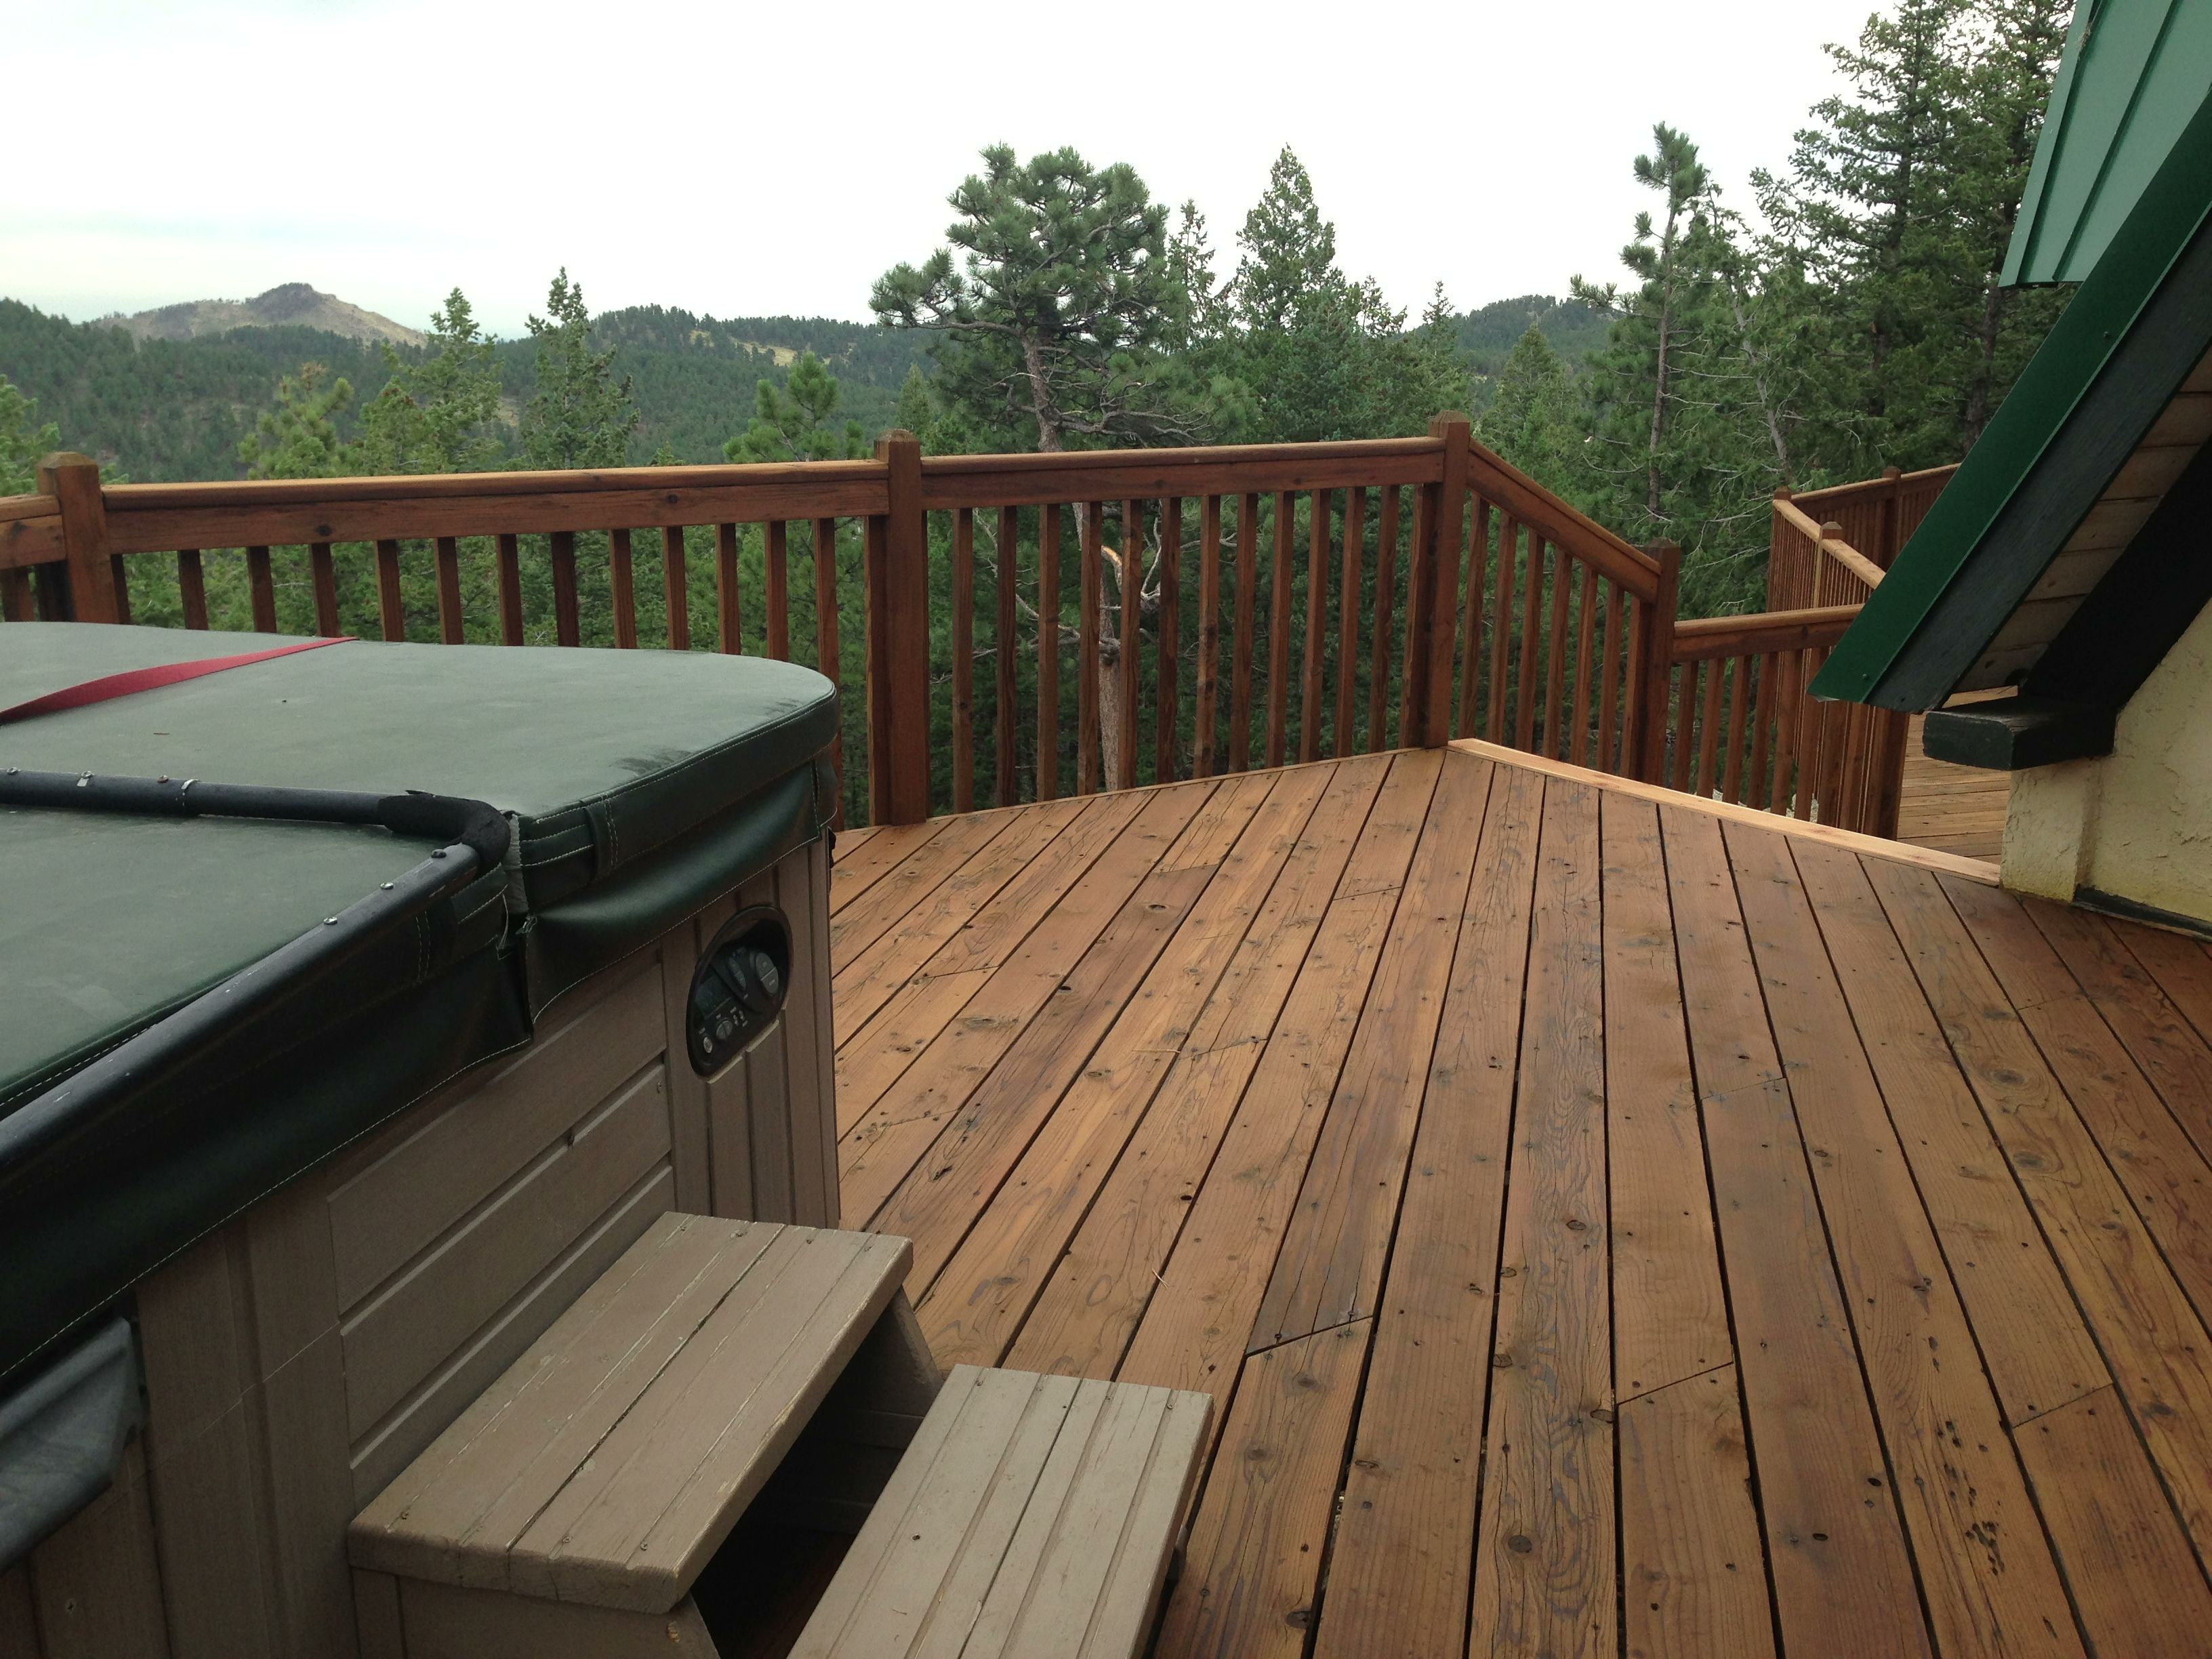 Pin By Stacie L On Deck Restoration In The Colorado Rockies Backyard Patio Deck Restoration Outdoor Areas